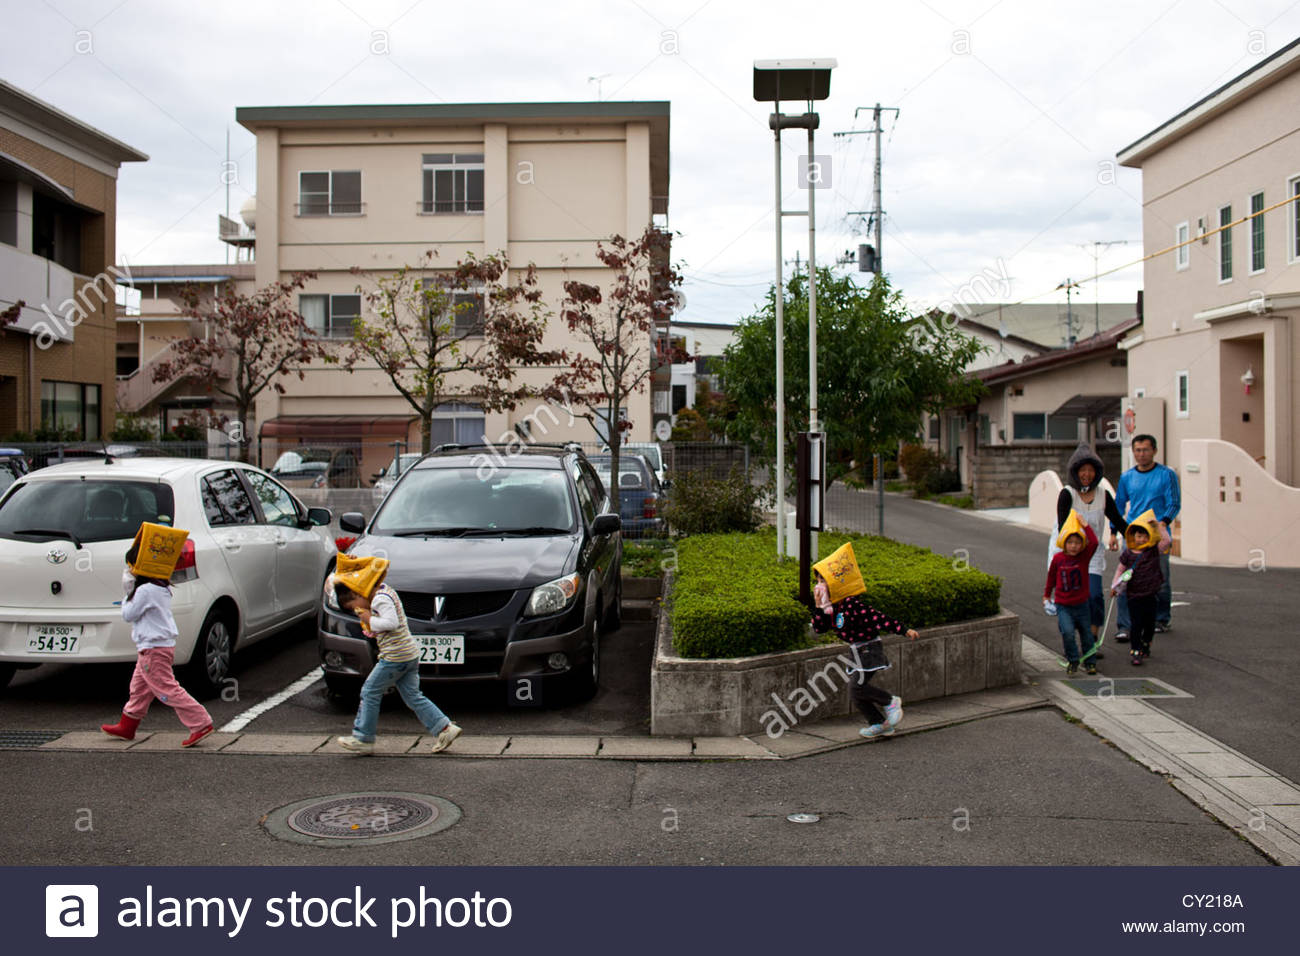 School children cross a parking lot in Watari, Fukushima city, 60km from the Fukushima Daiichi nuclear power plant. - Stock Image